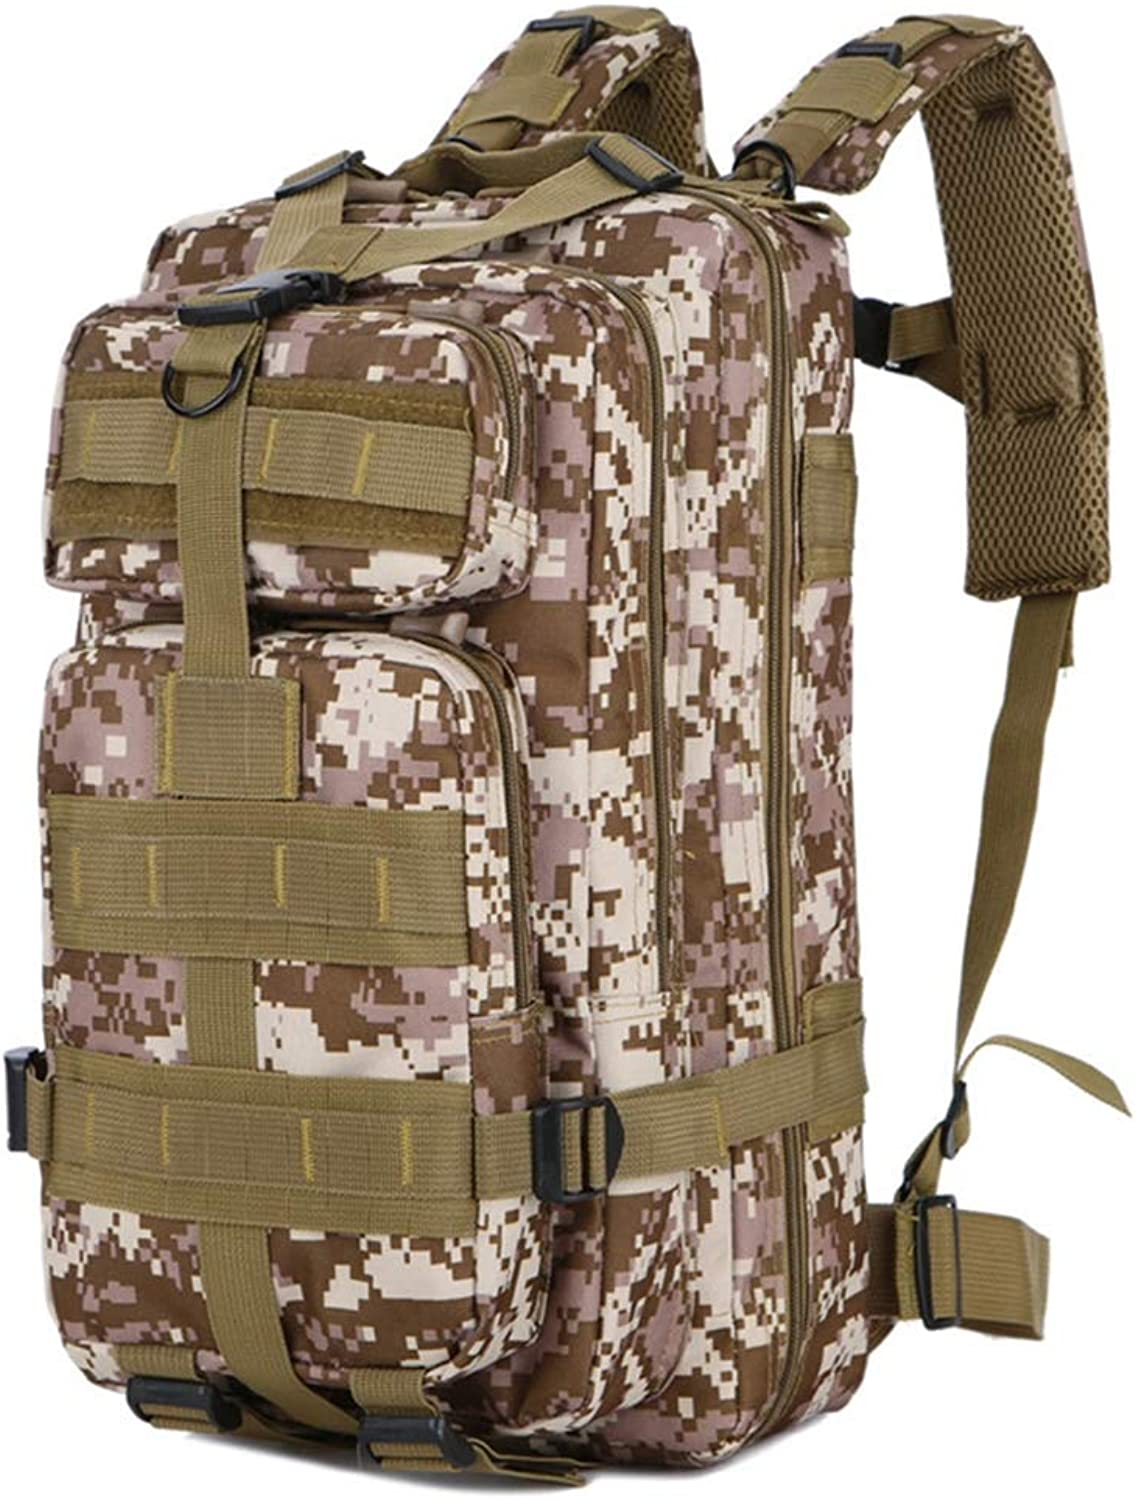 Camouflage Outdoor Sports Backpack, Camouflage Mountaineering Bag Hiking Backpack Tactical Bag 30L Oxford Cloth Waterproof Camouflage Backpack